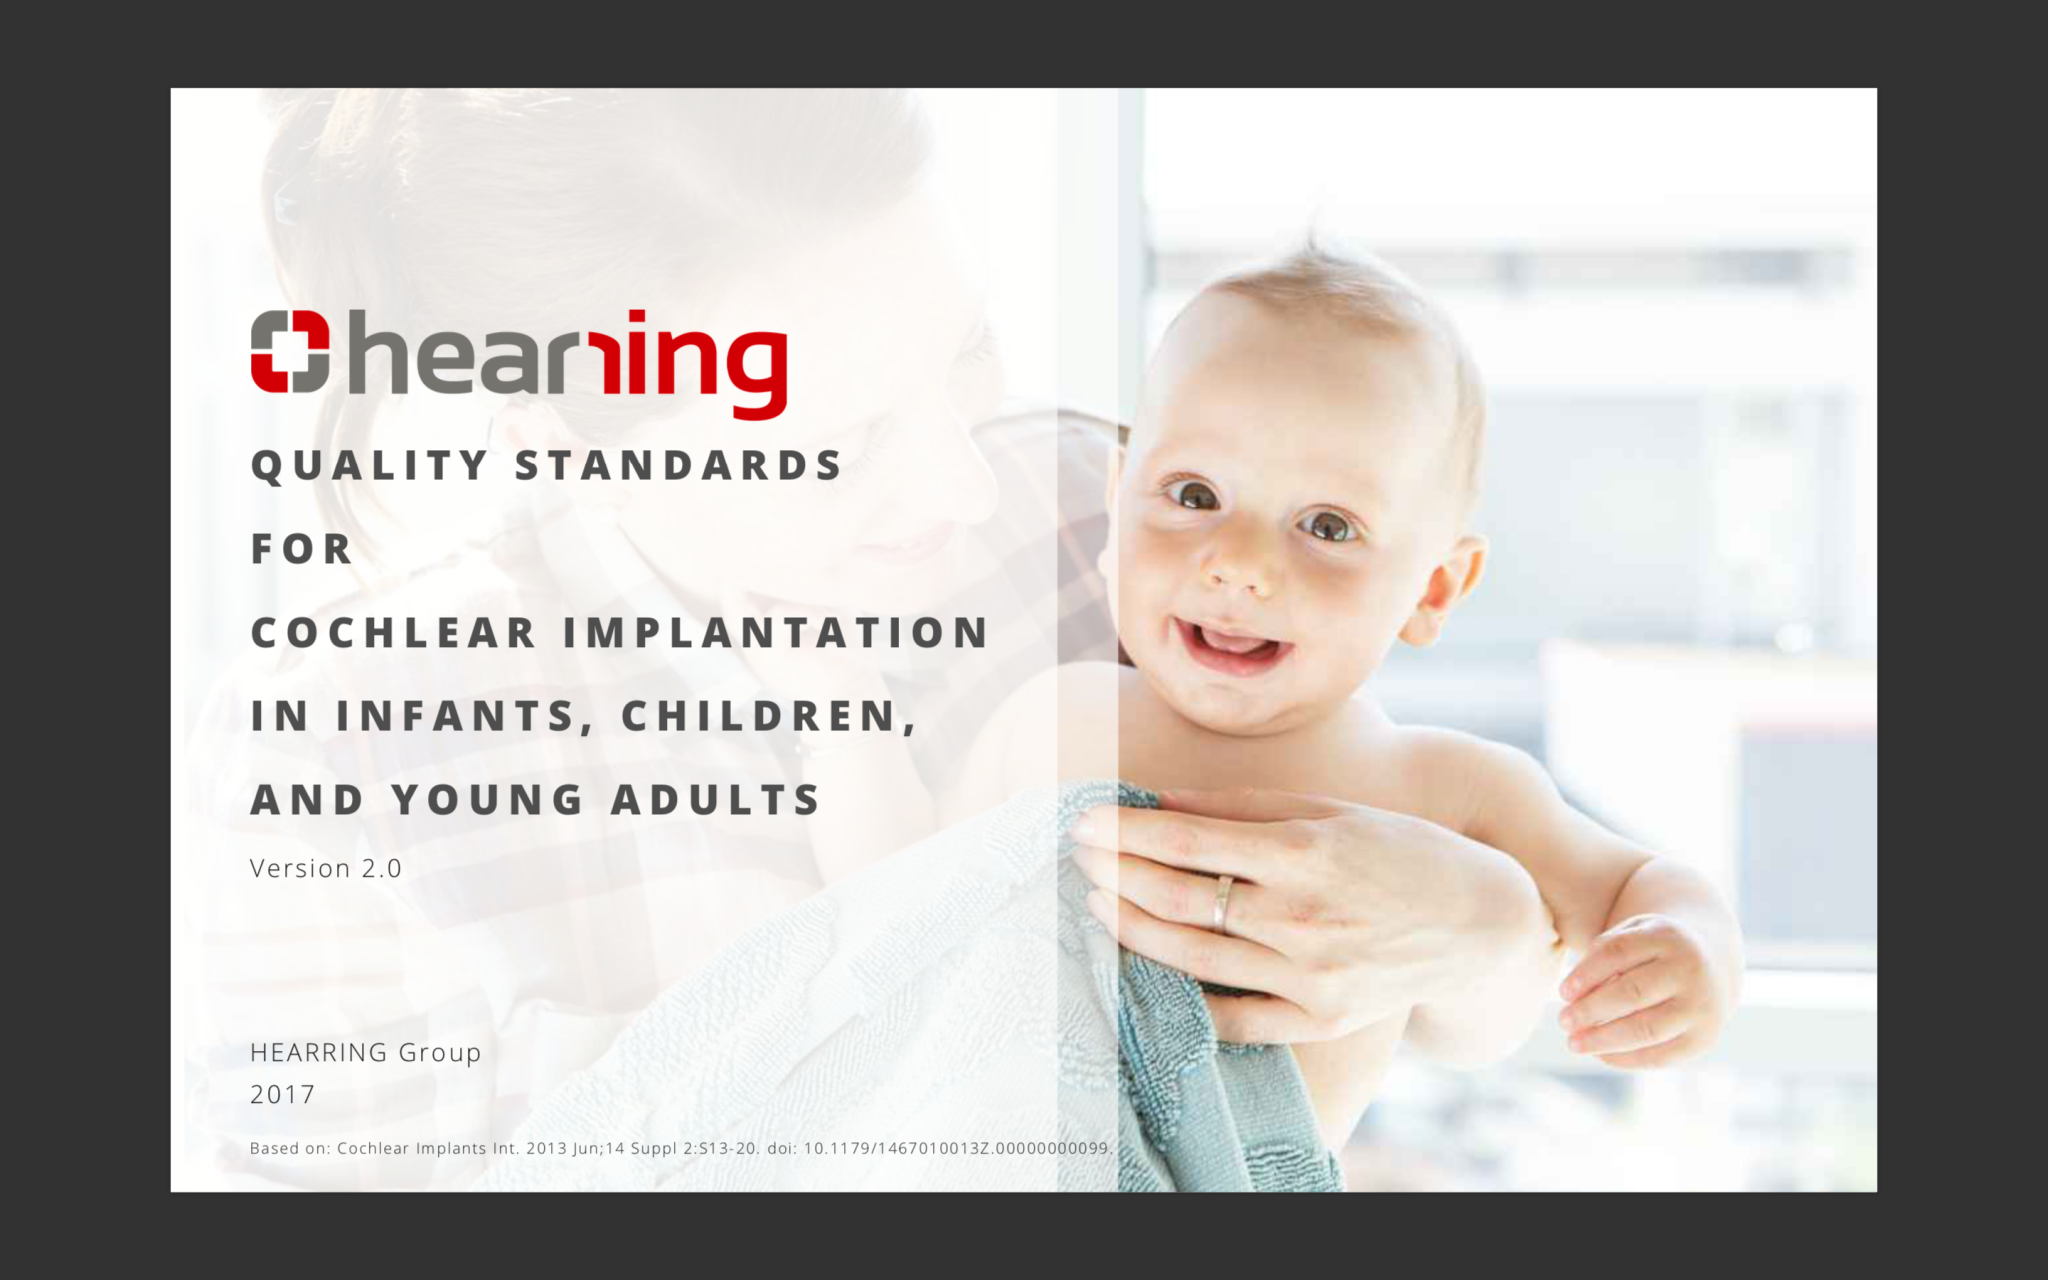 Cochlear Implantation Quality Standards Hearring